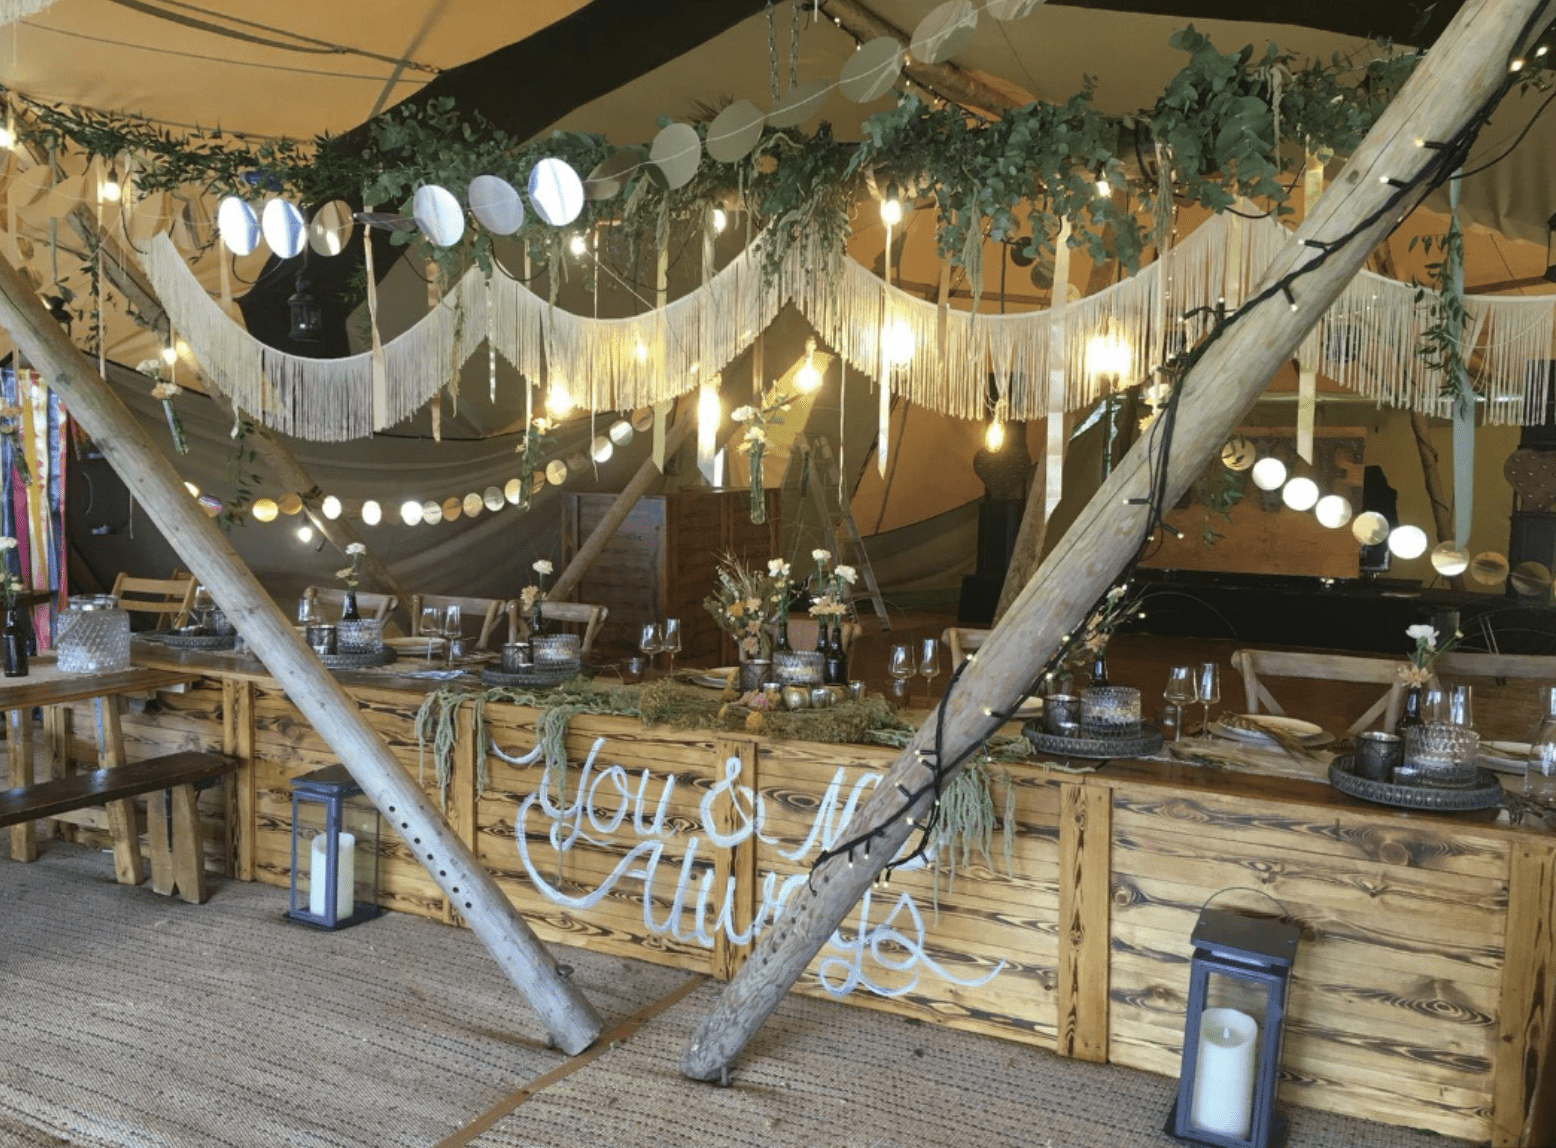 Top Table Inside Tipi